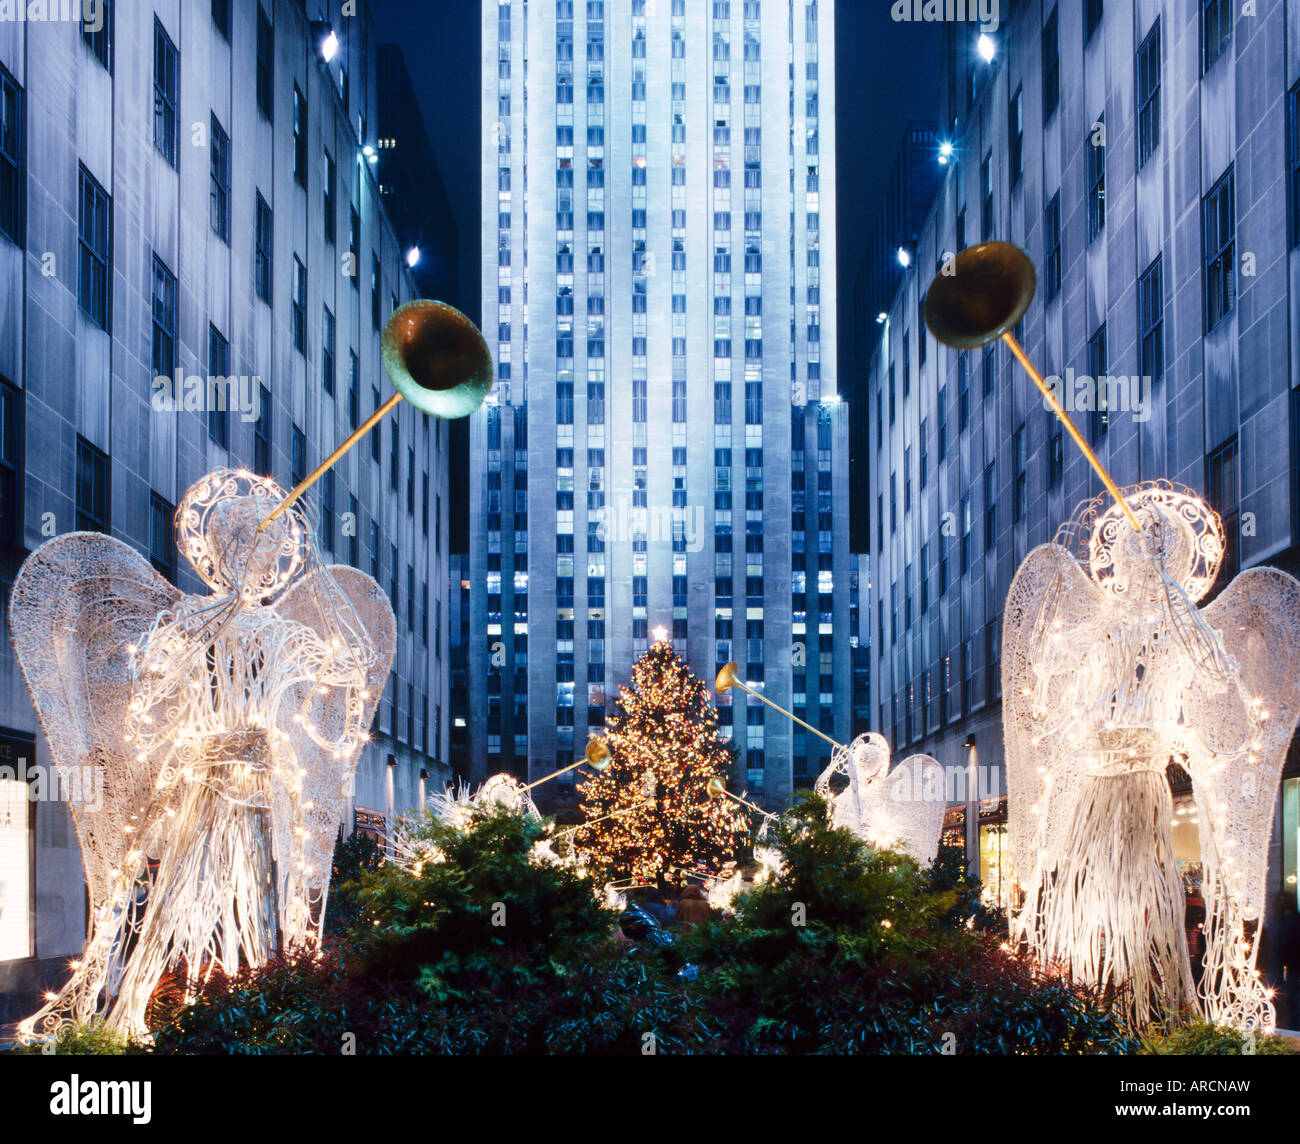 Angels at the Rockerfeller Centre, decorated for Christmas, New York City, USA - Stock Image